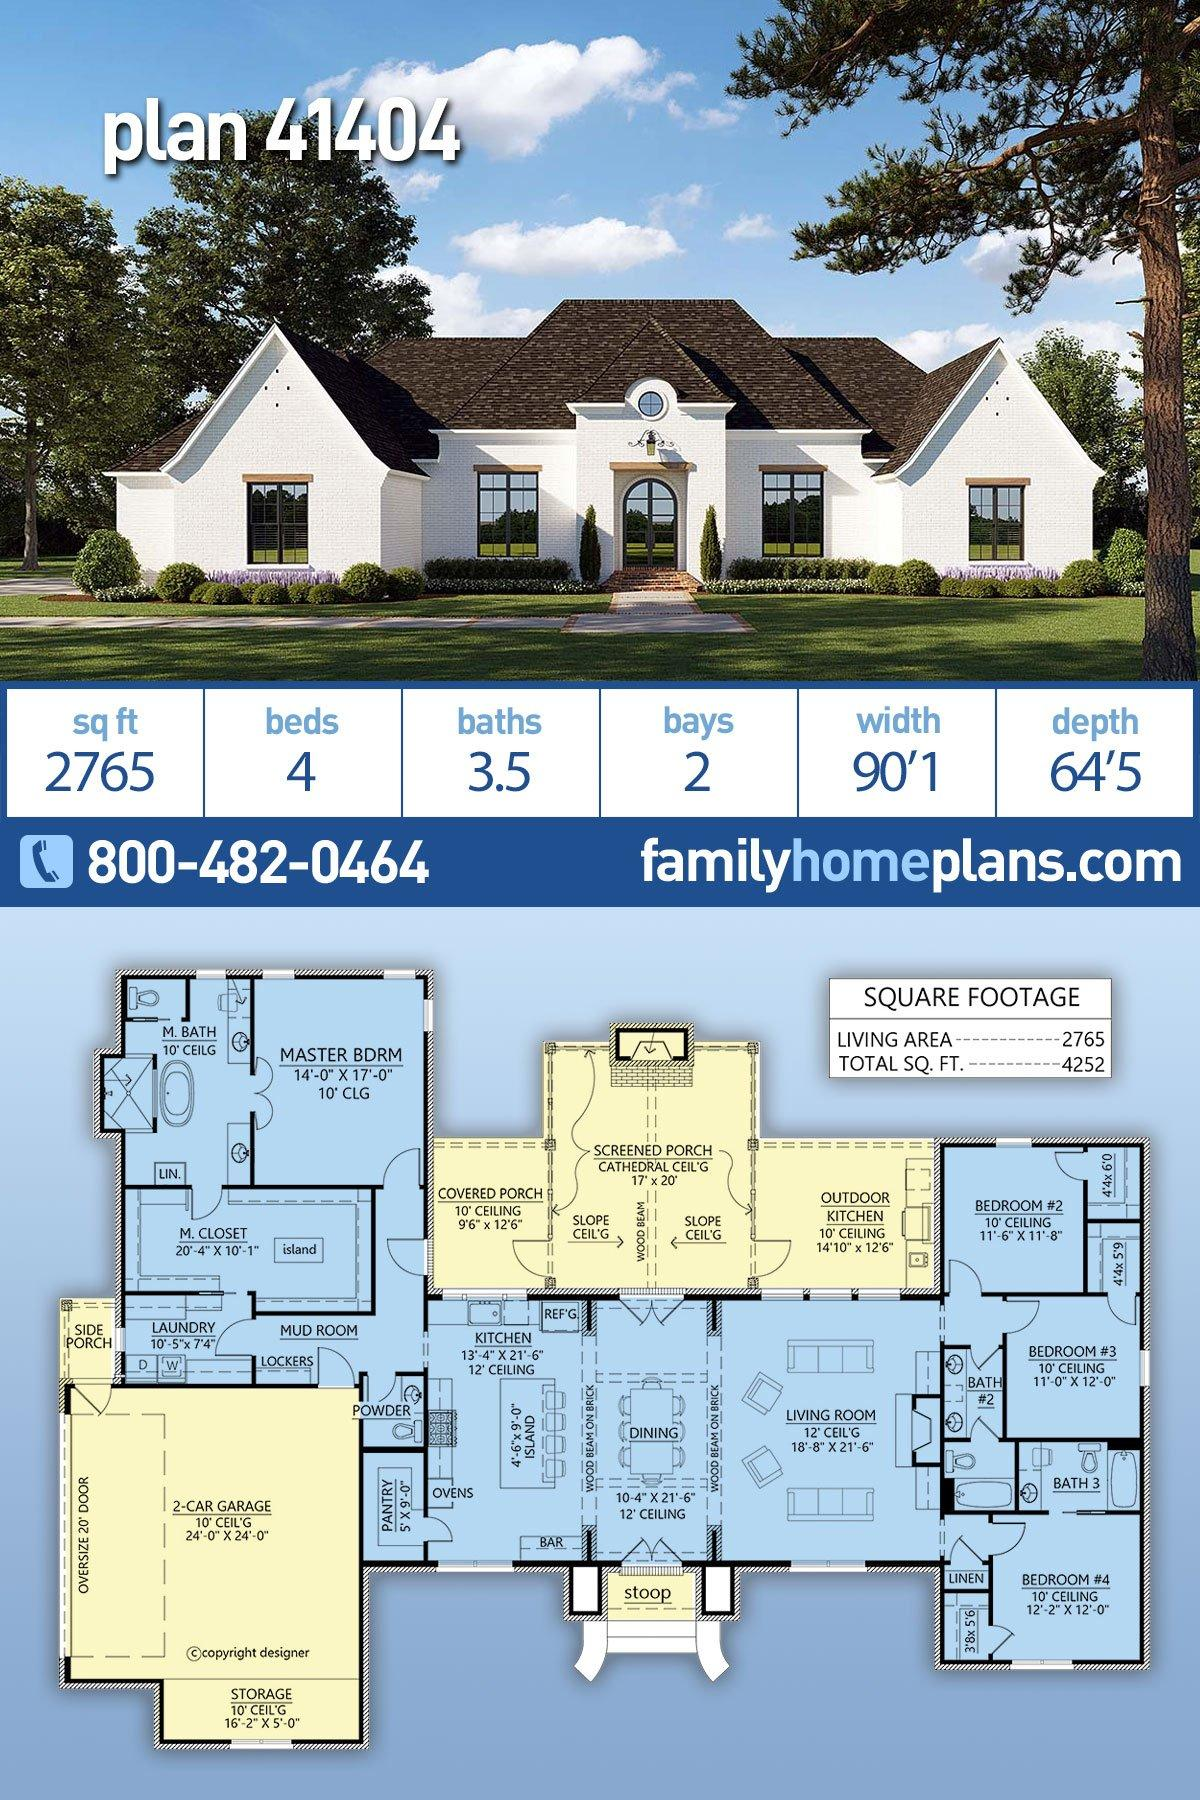 European, French Country, Traditional House Plan 41404 with 4 Beds, 4 Baths, 2 Car Garage